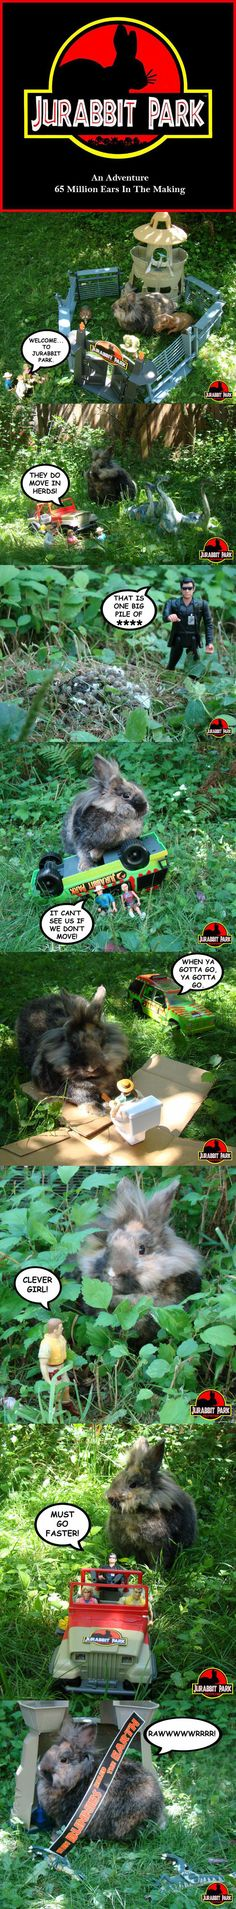 Jurabbit Park by Roger the Grump (via Cute Overload)